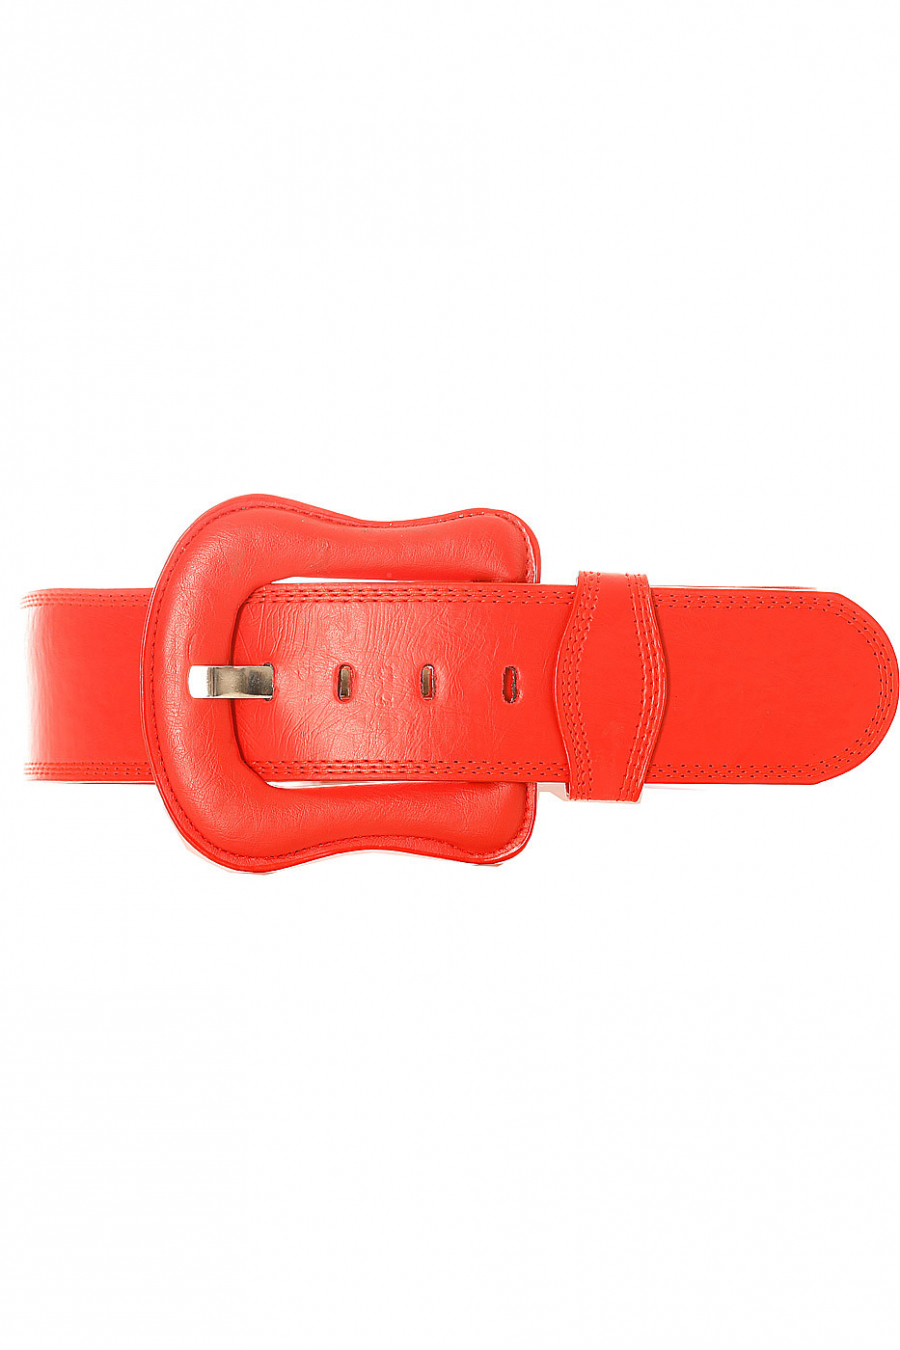 Big red belt with buckle of the same material. BG-po13